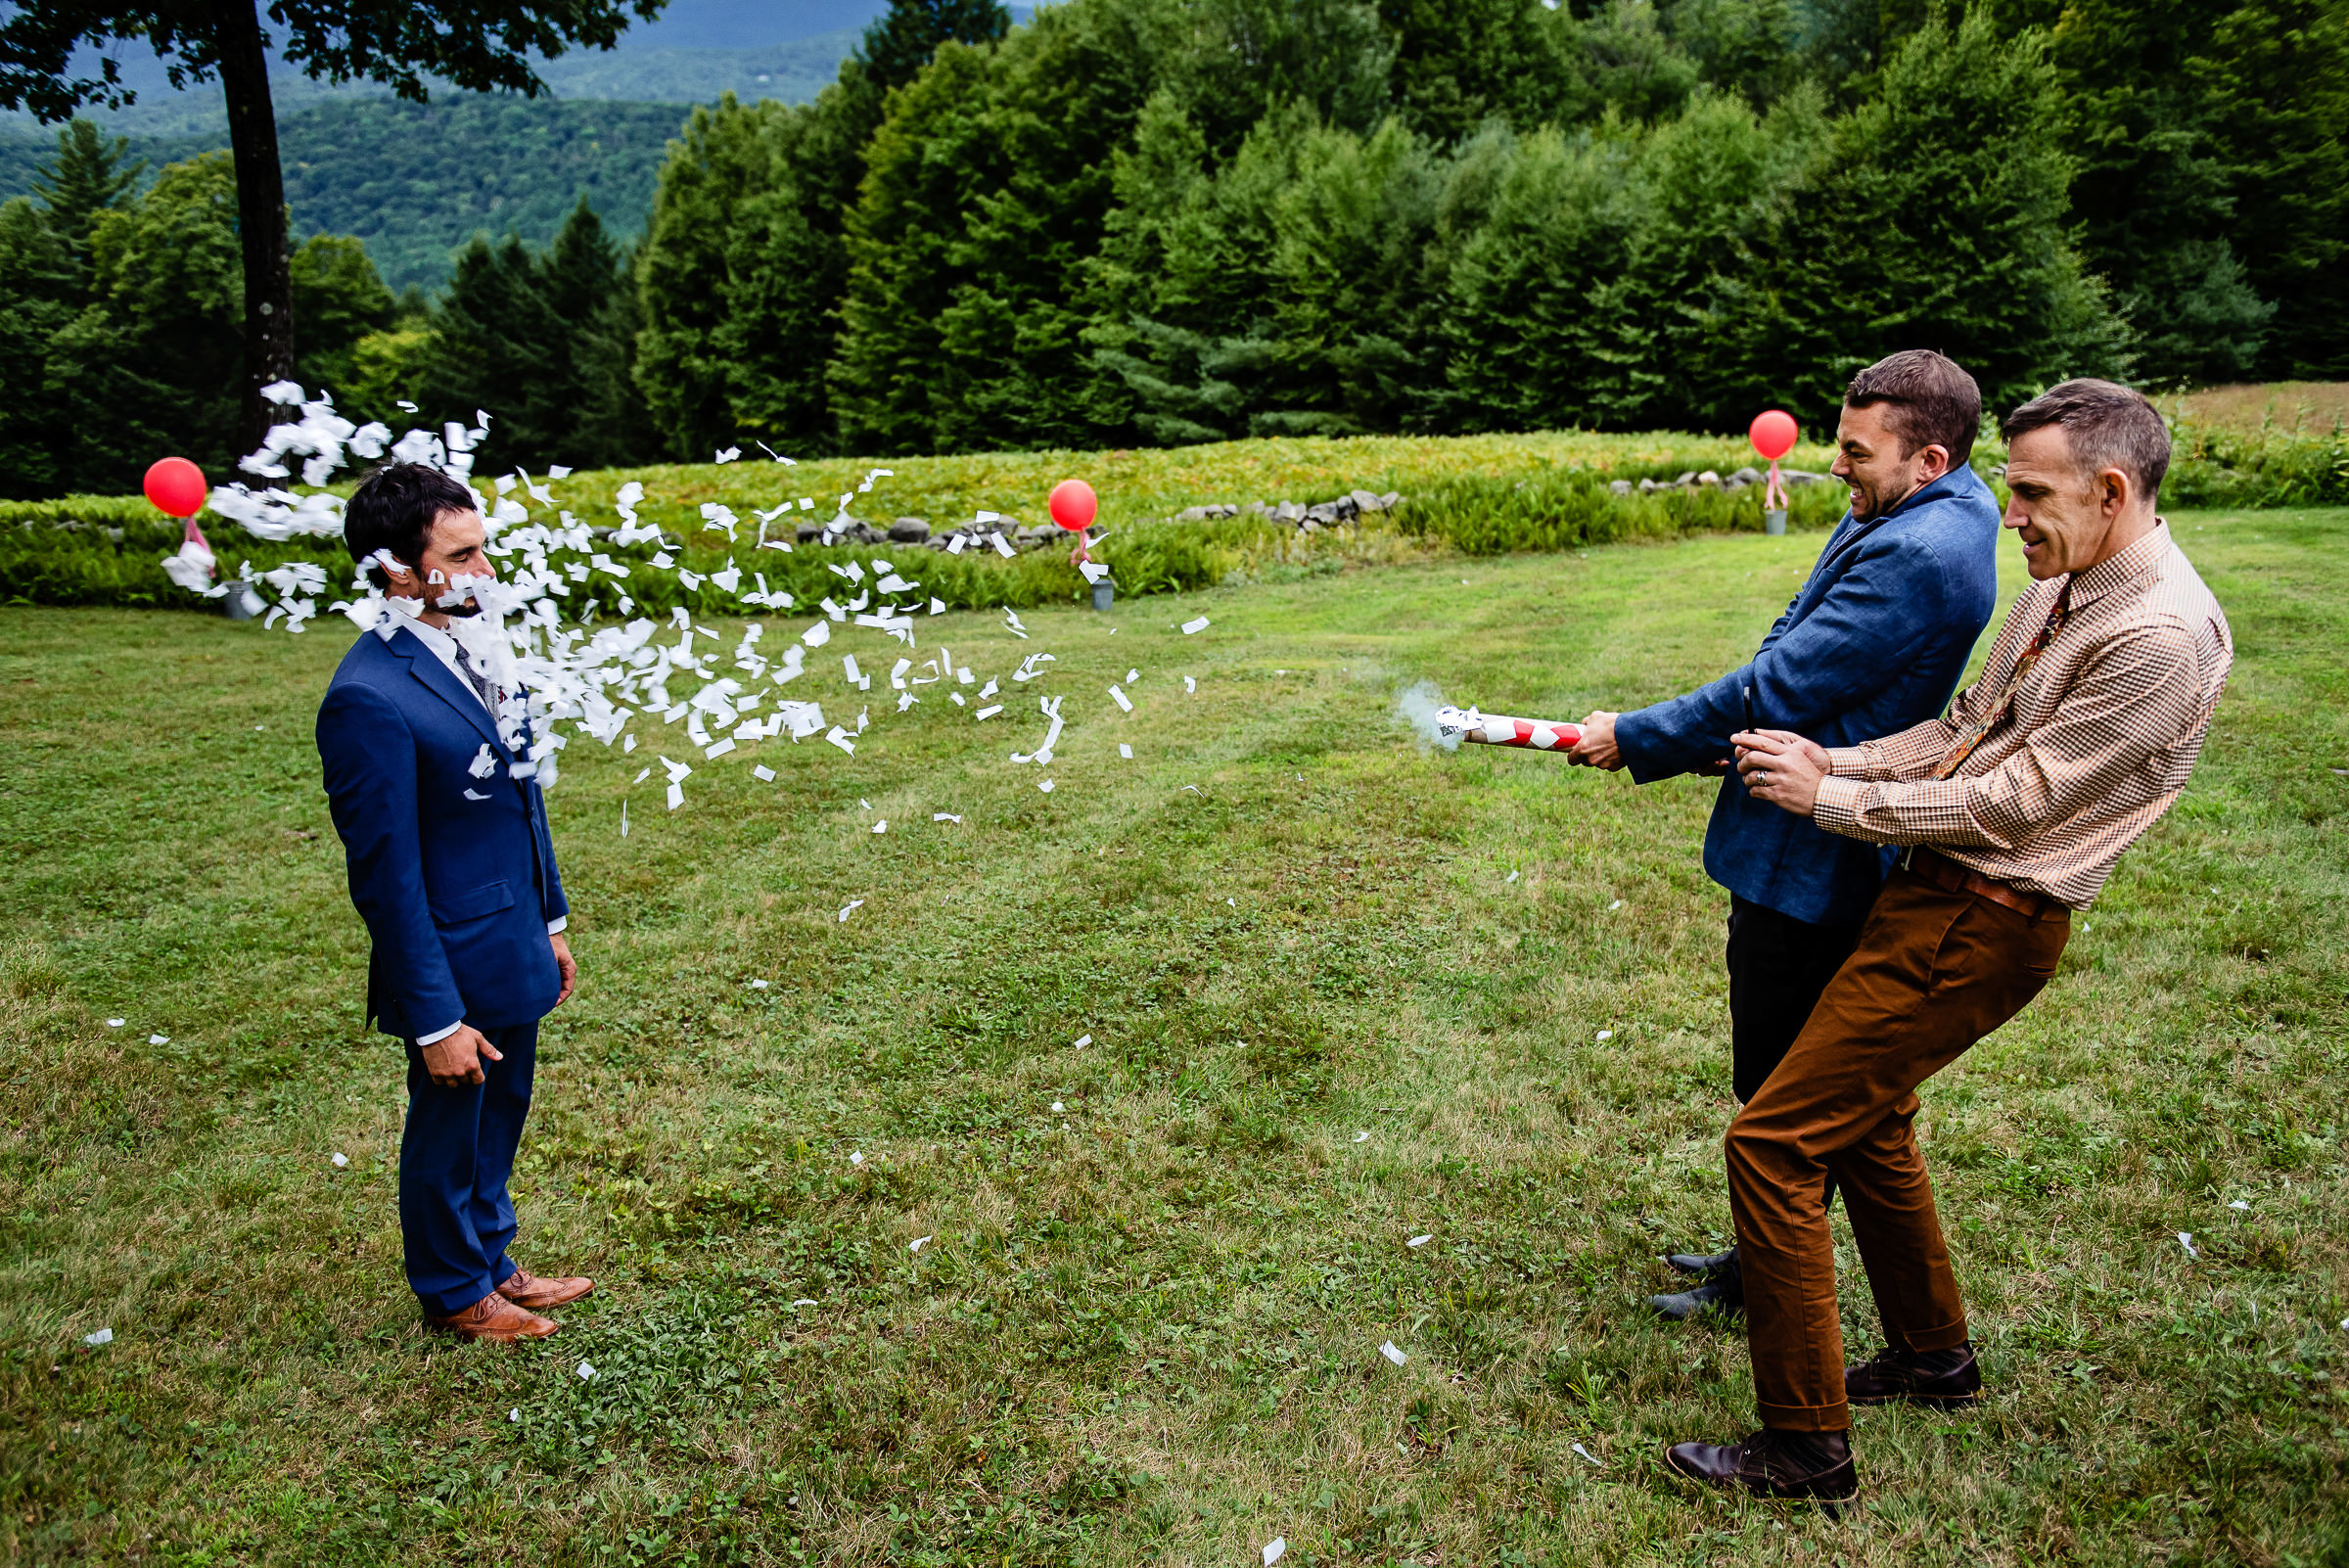 guests being playful with the groom - photo by Hannah Photography